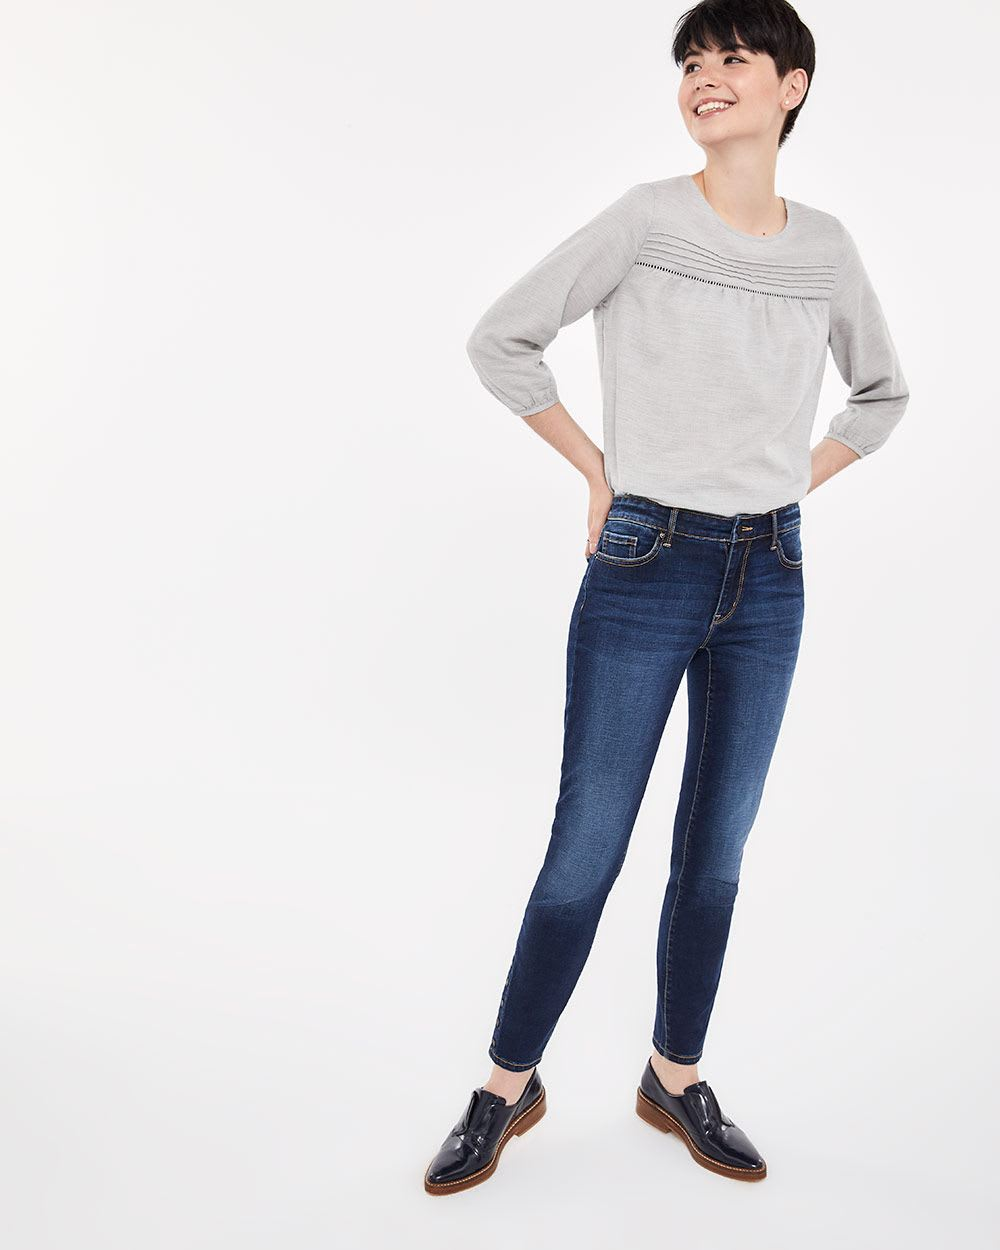 The Skinny Blue-Black Sculpting Jeans